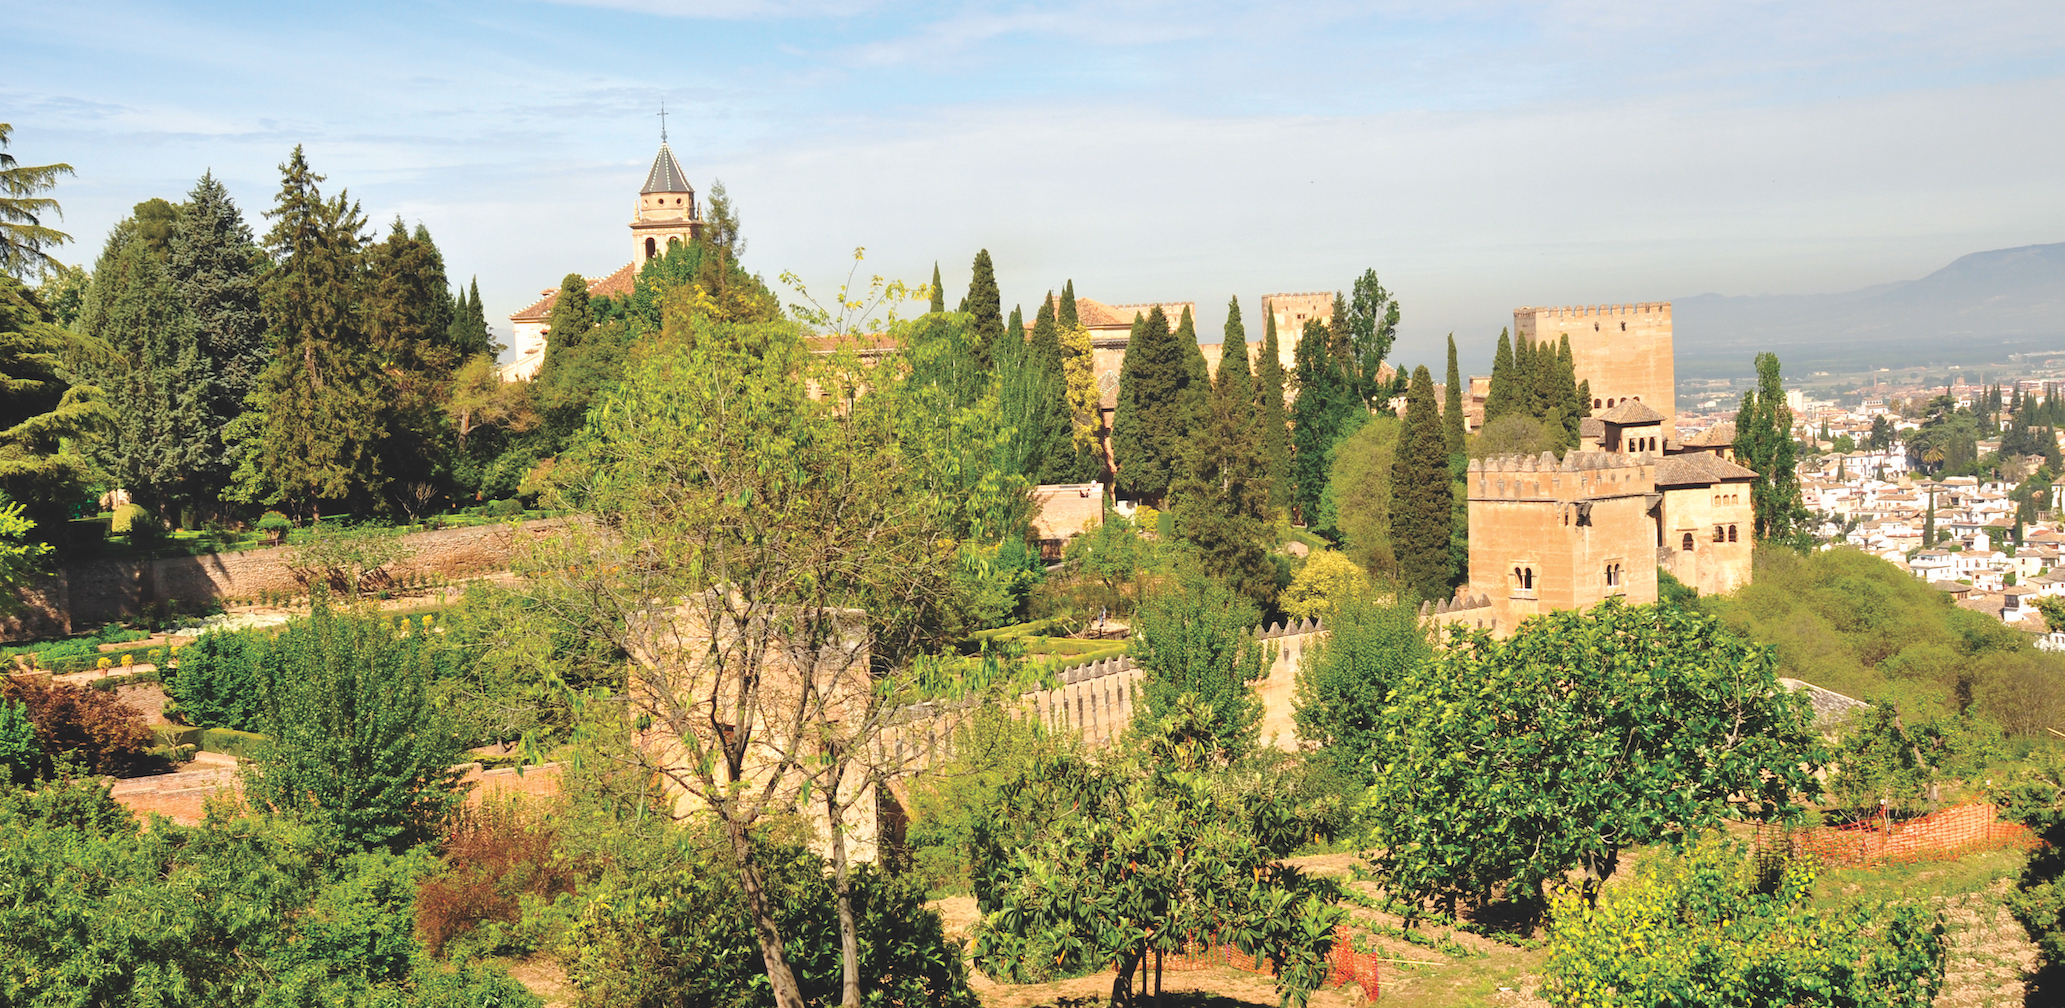 The famed Alhambra and view of Granada city below.  Photo by Angela Walker.